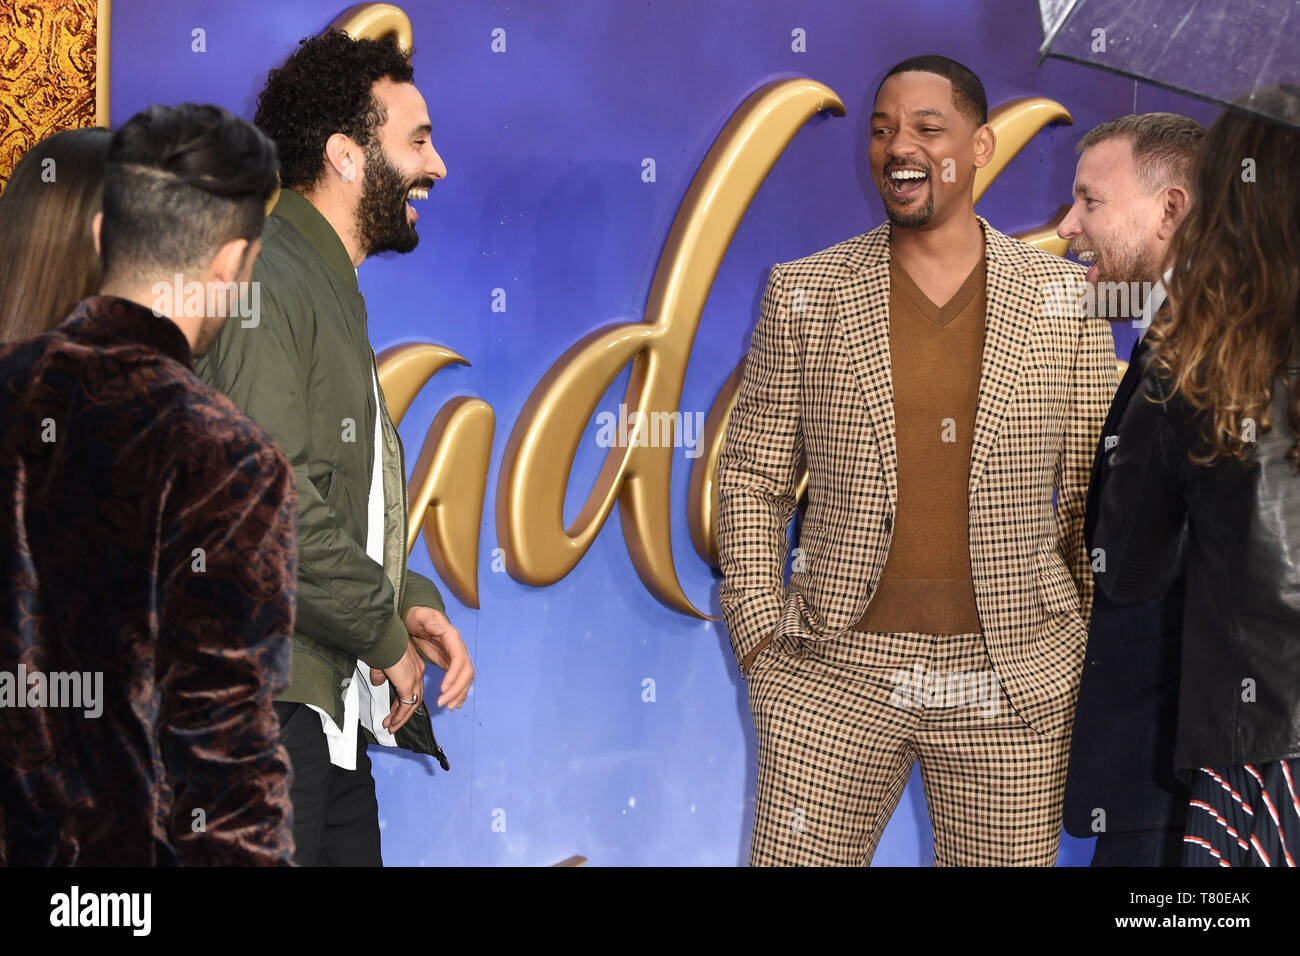 Londres, Royaume-Uni. 09 mai, 2019. Londres, Royaume-Uni. Mai 09, 2019 : Marwan Kenzari & Will Smith au 'Aladdin' premiere à l'odéon Luxe, Leicester Square, Londres. Photo : Steve Sav/Featureflash Crédit : Paul Smith/Alamy Live News Banque D'Images